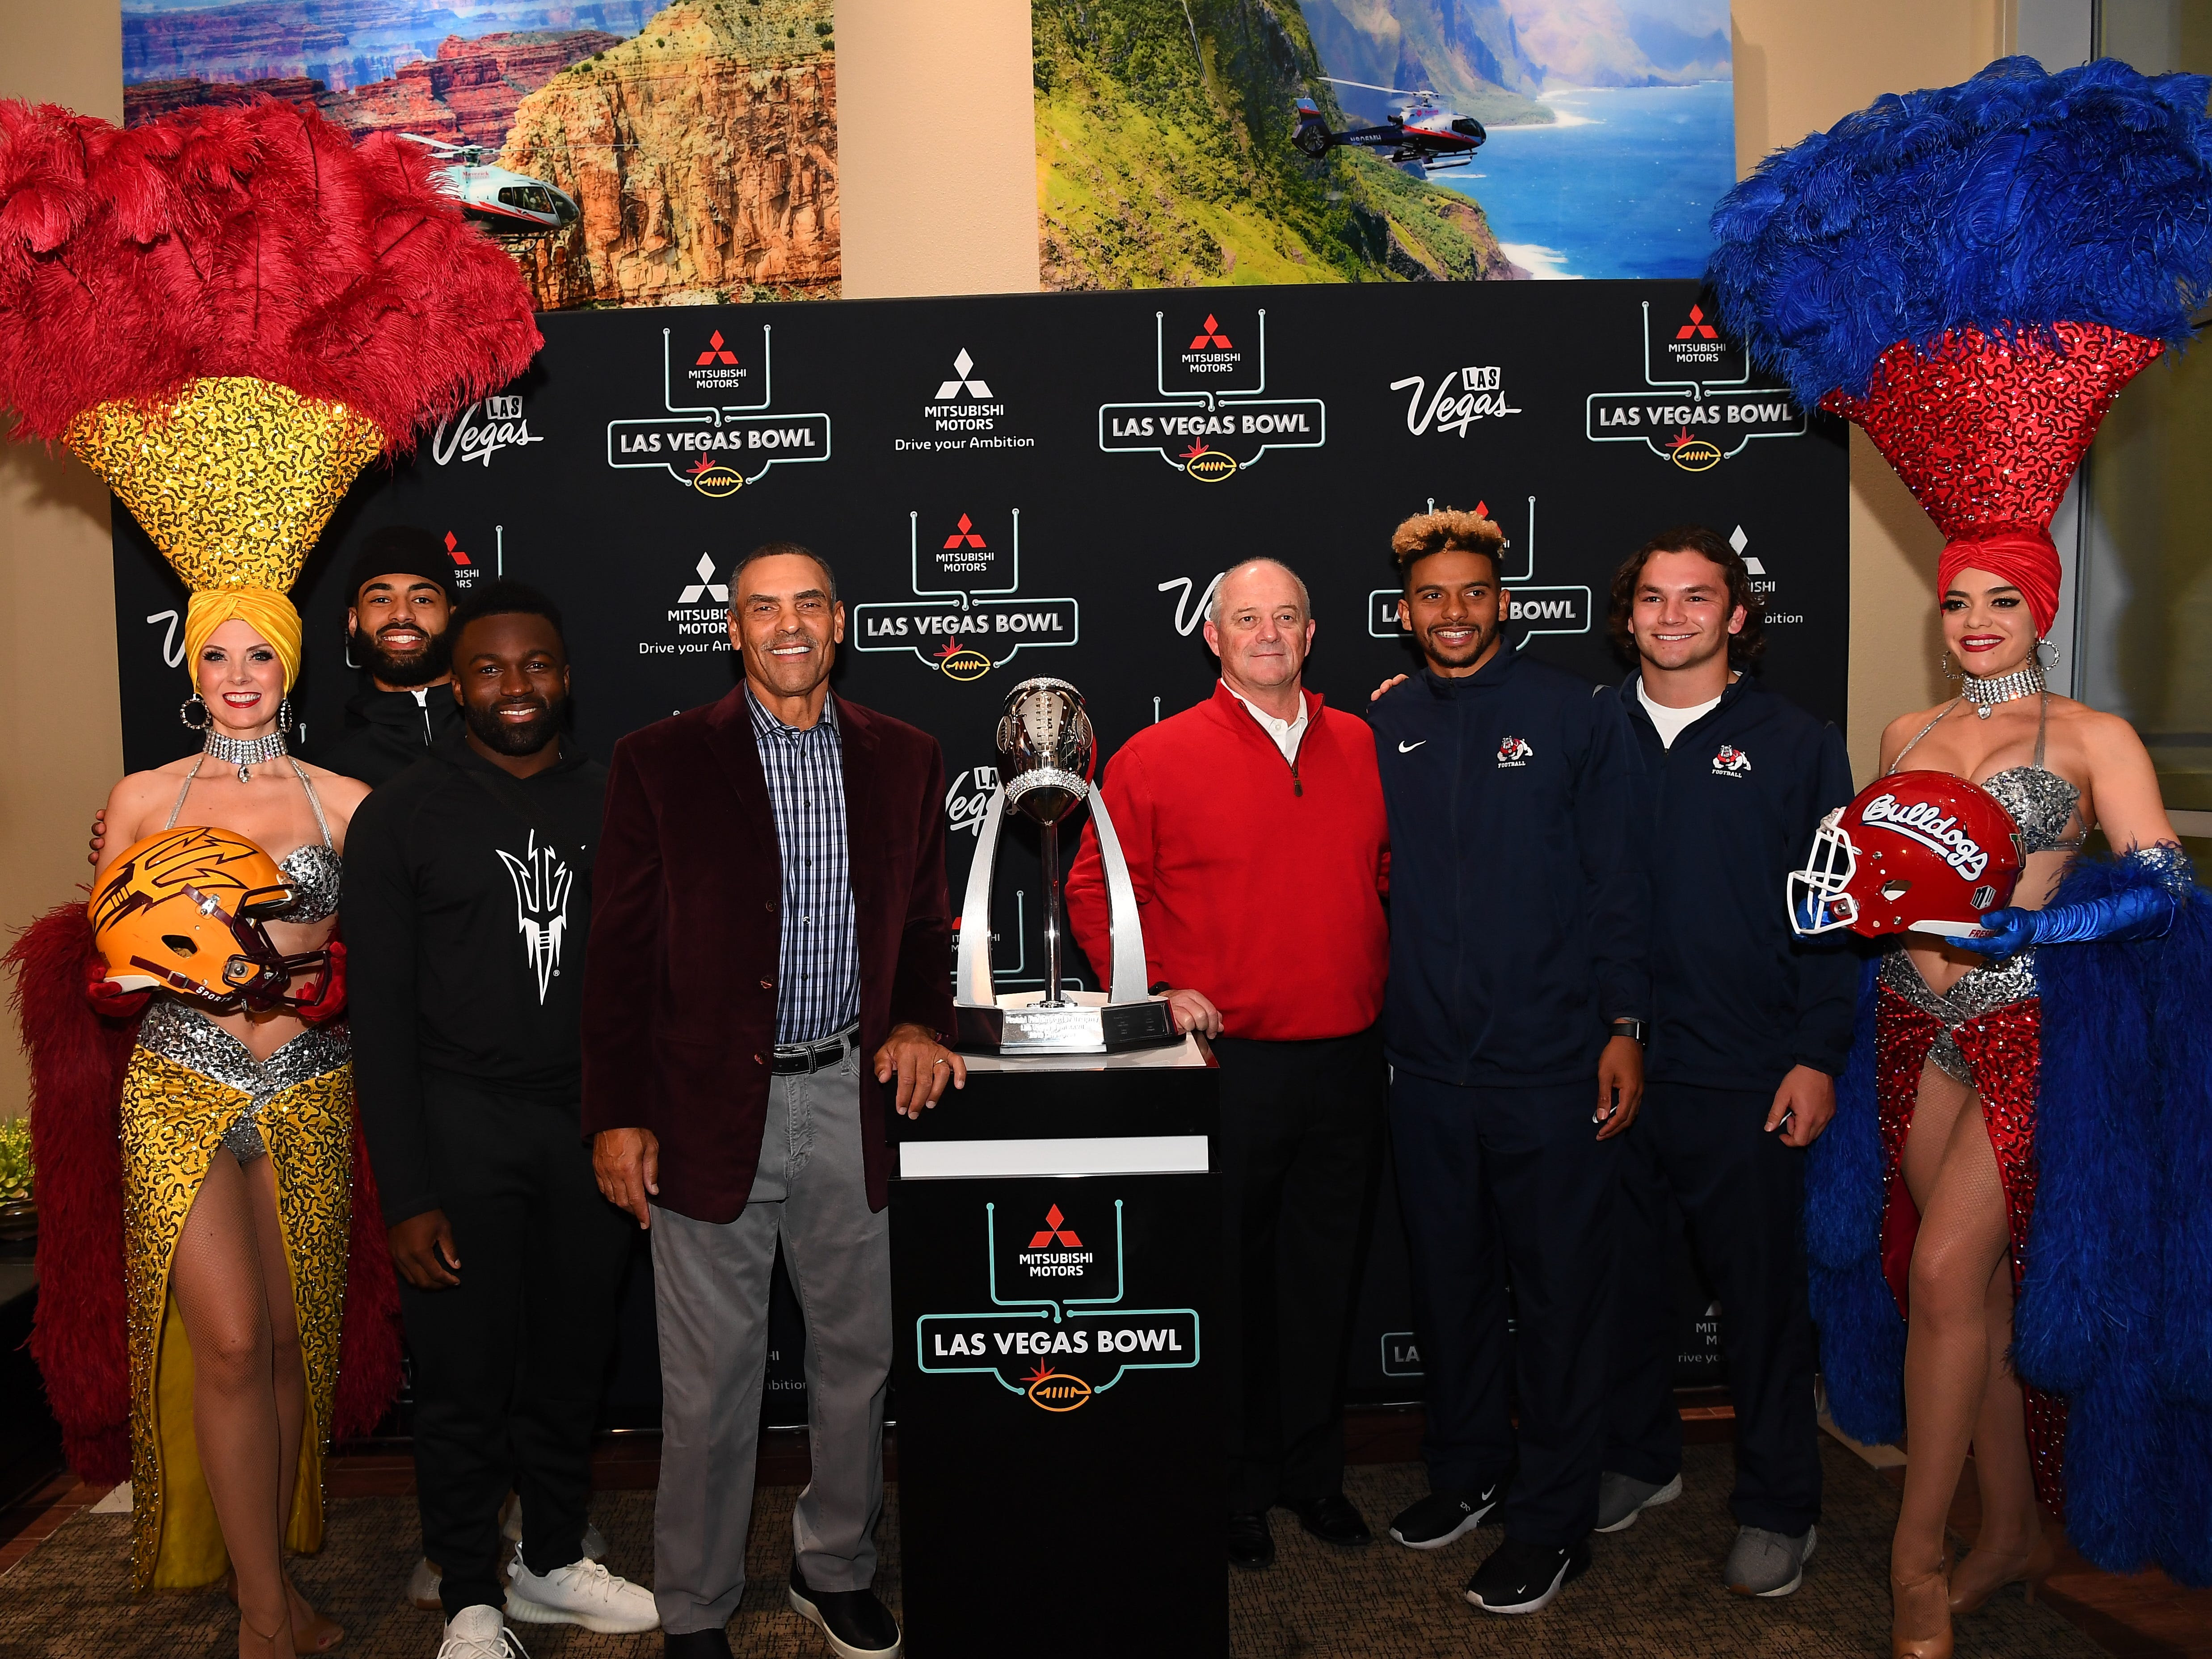 ASU's Manny Wilkins, Eno Williams and Herm Edwards pose with Fresno State's Jeff Tedford, Marcus McMaryion and George Helmuth during a media event in Las Vegas on Tuesday.